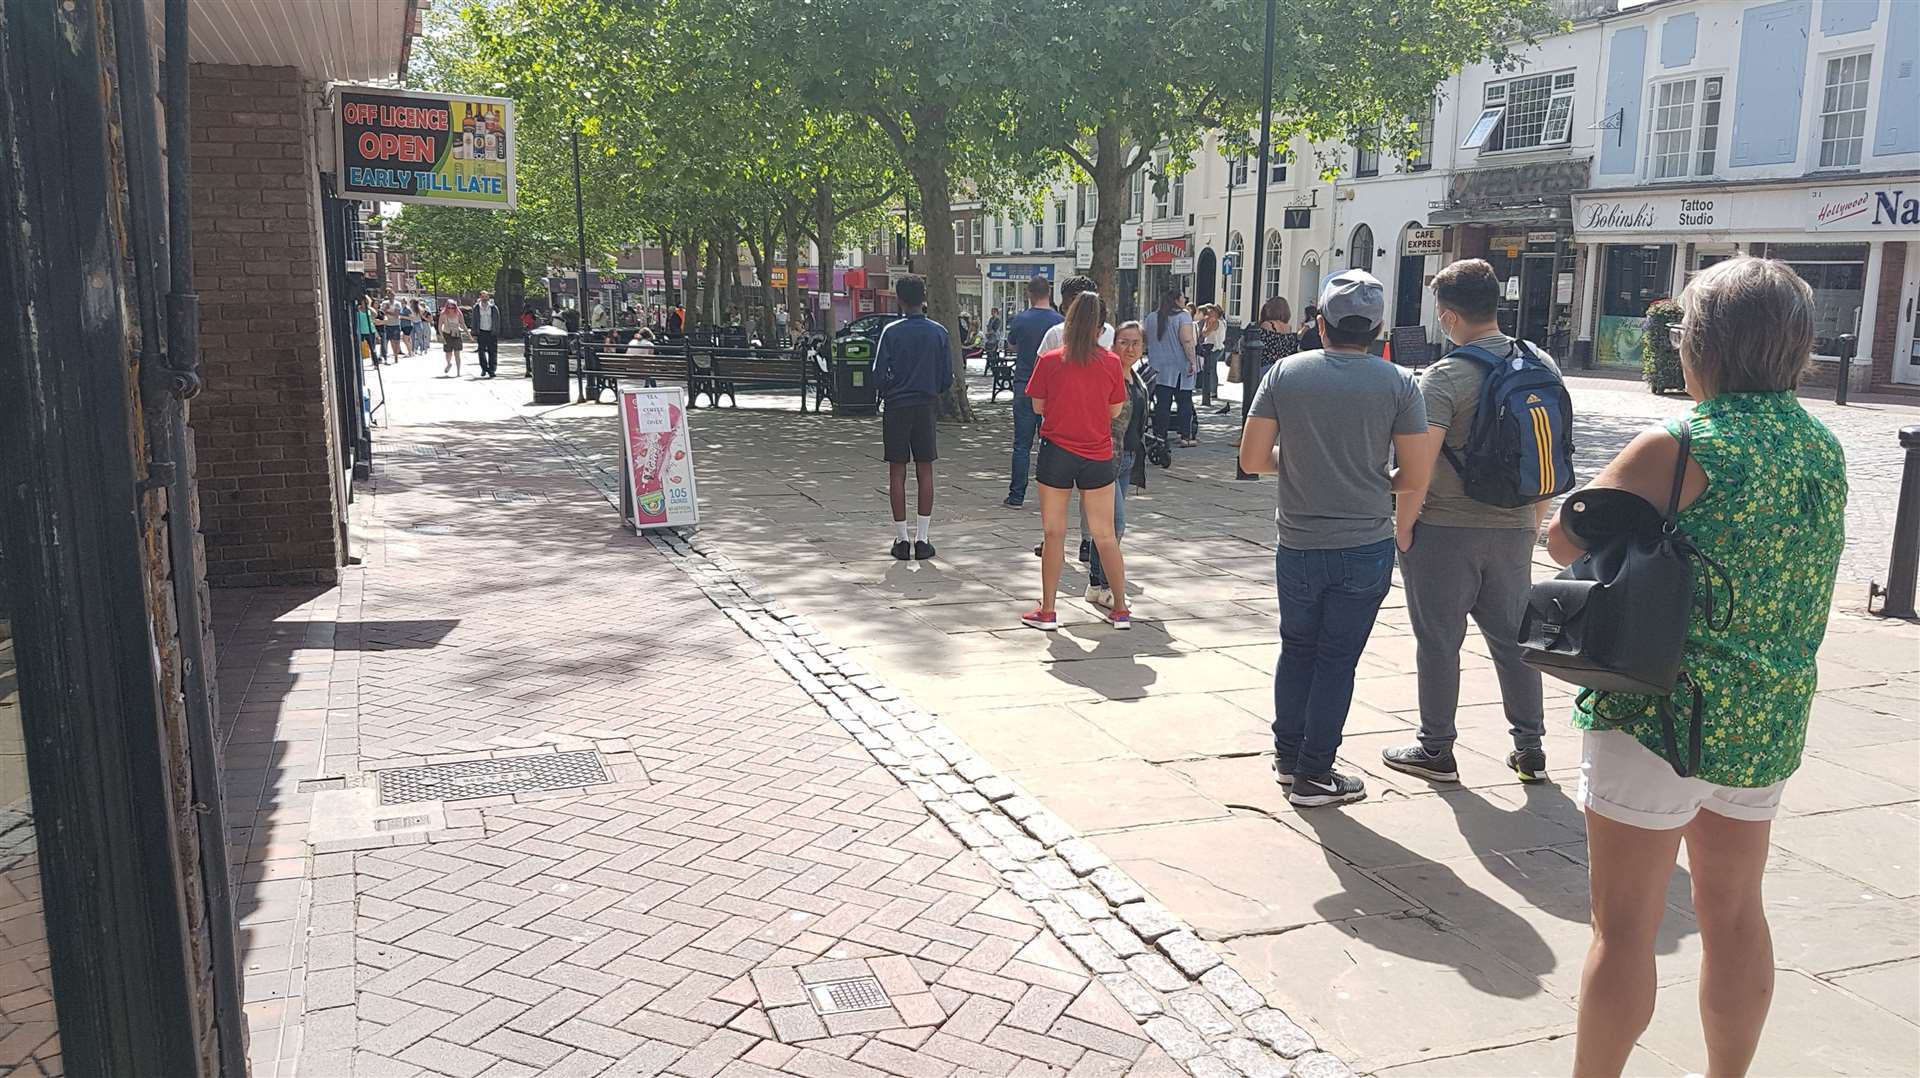 Ashford's Sports Direct proved a particular hit on the first day of shops reopening, with a long queue forming before opening until late in the evening.